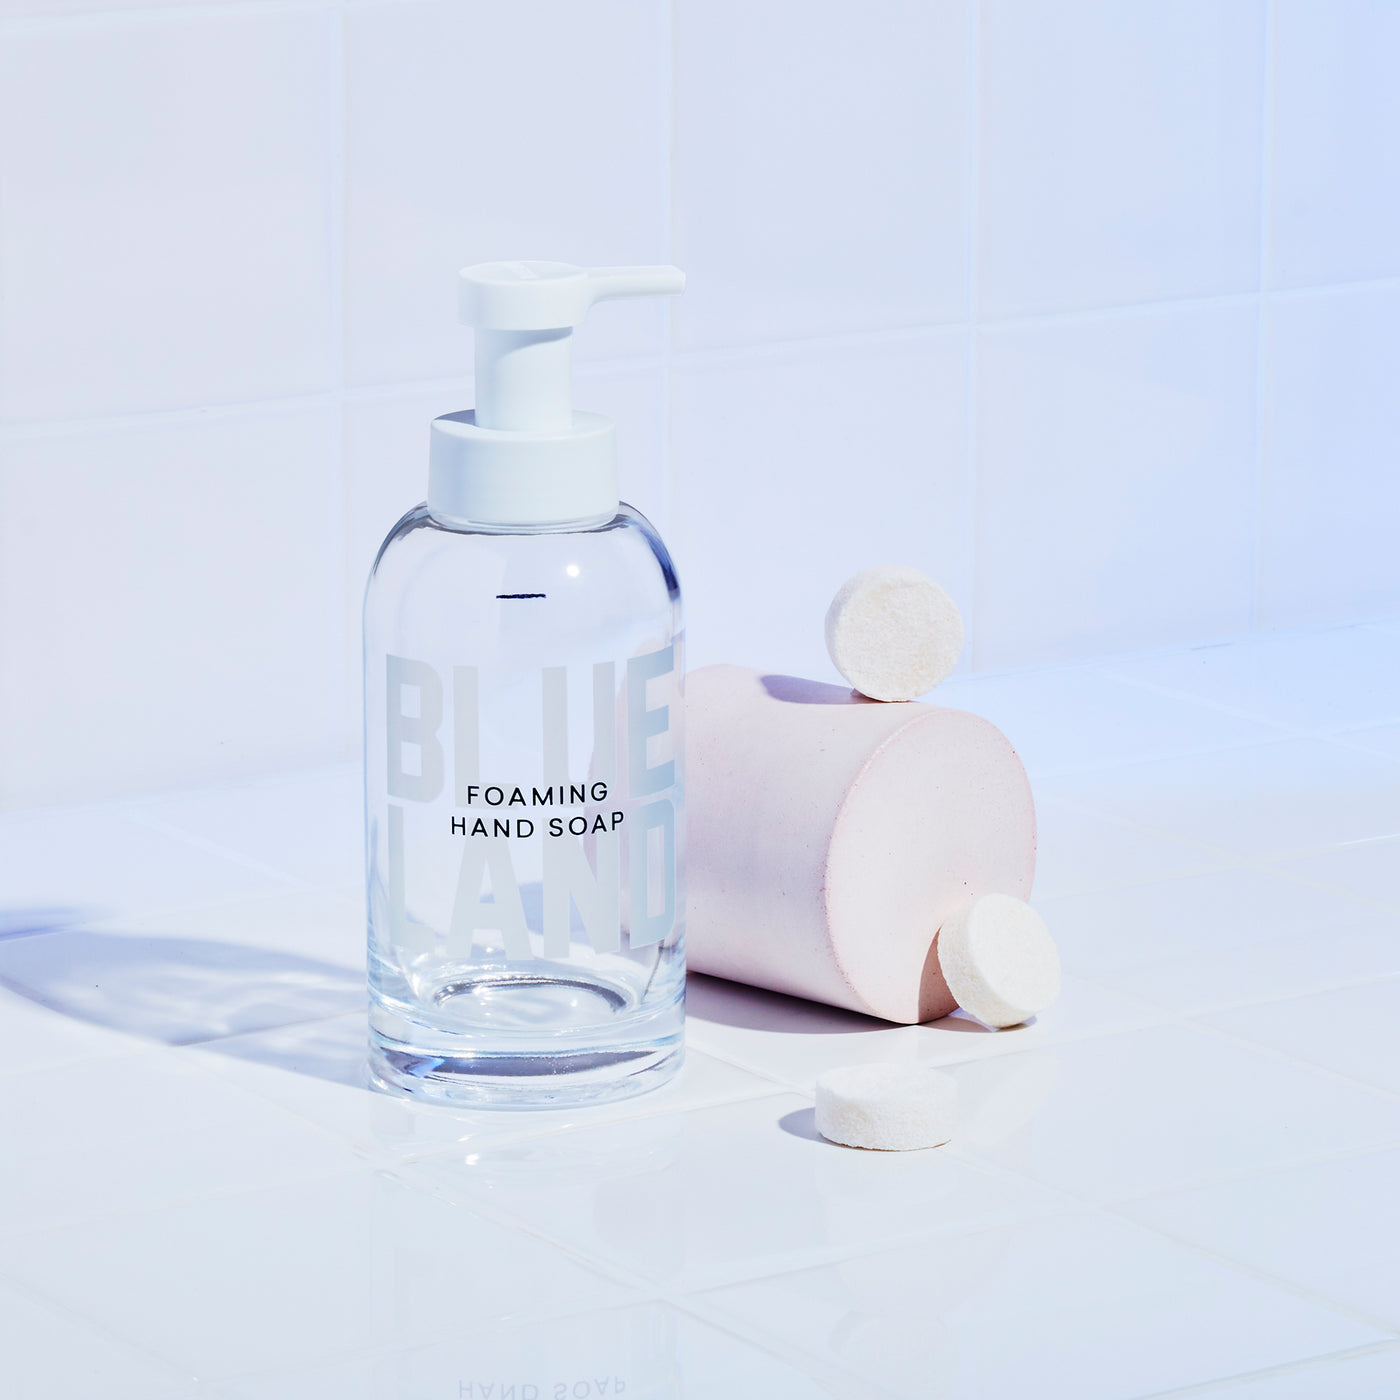 Reusable glass hand soap bottle on white tile next to 3 white hand soap tablets resting on and around pink cylinder.